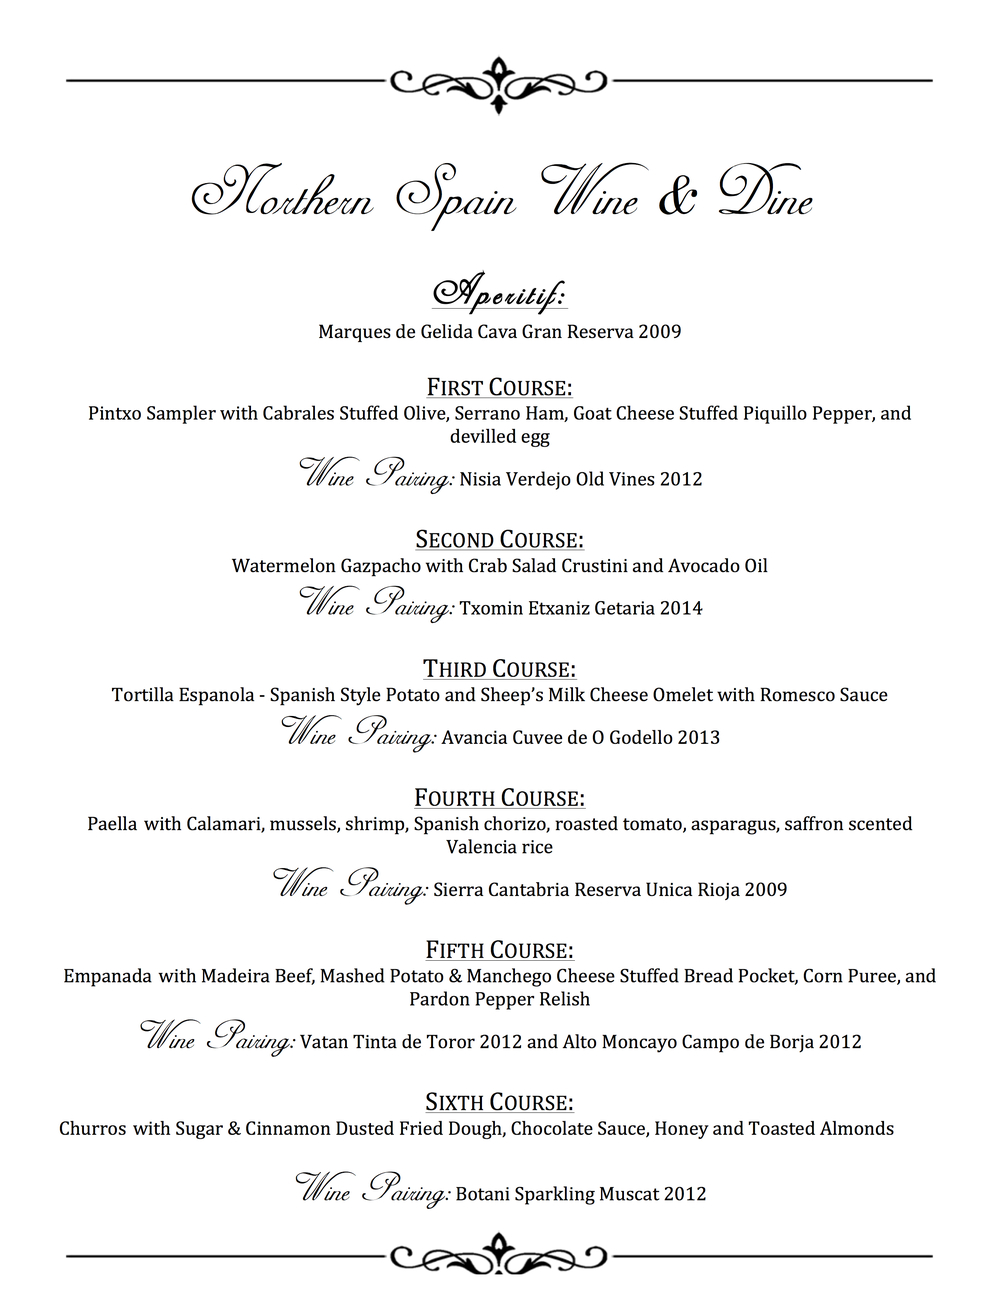 Northern Spain Wine & Dine Menu